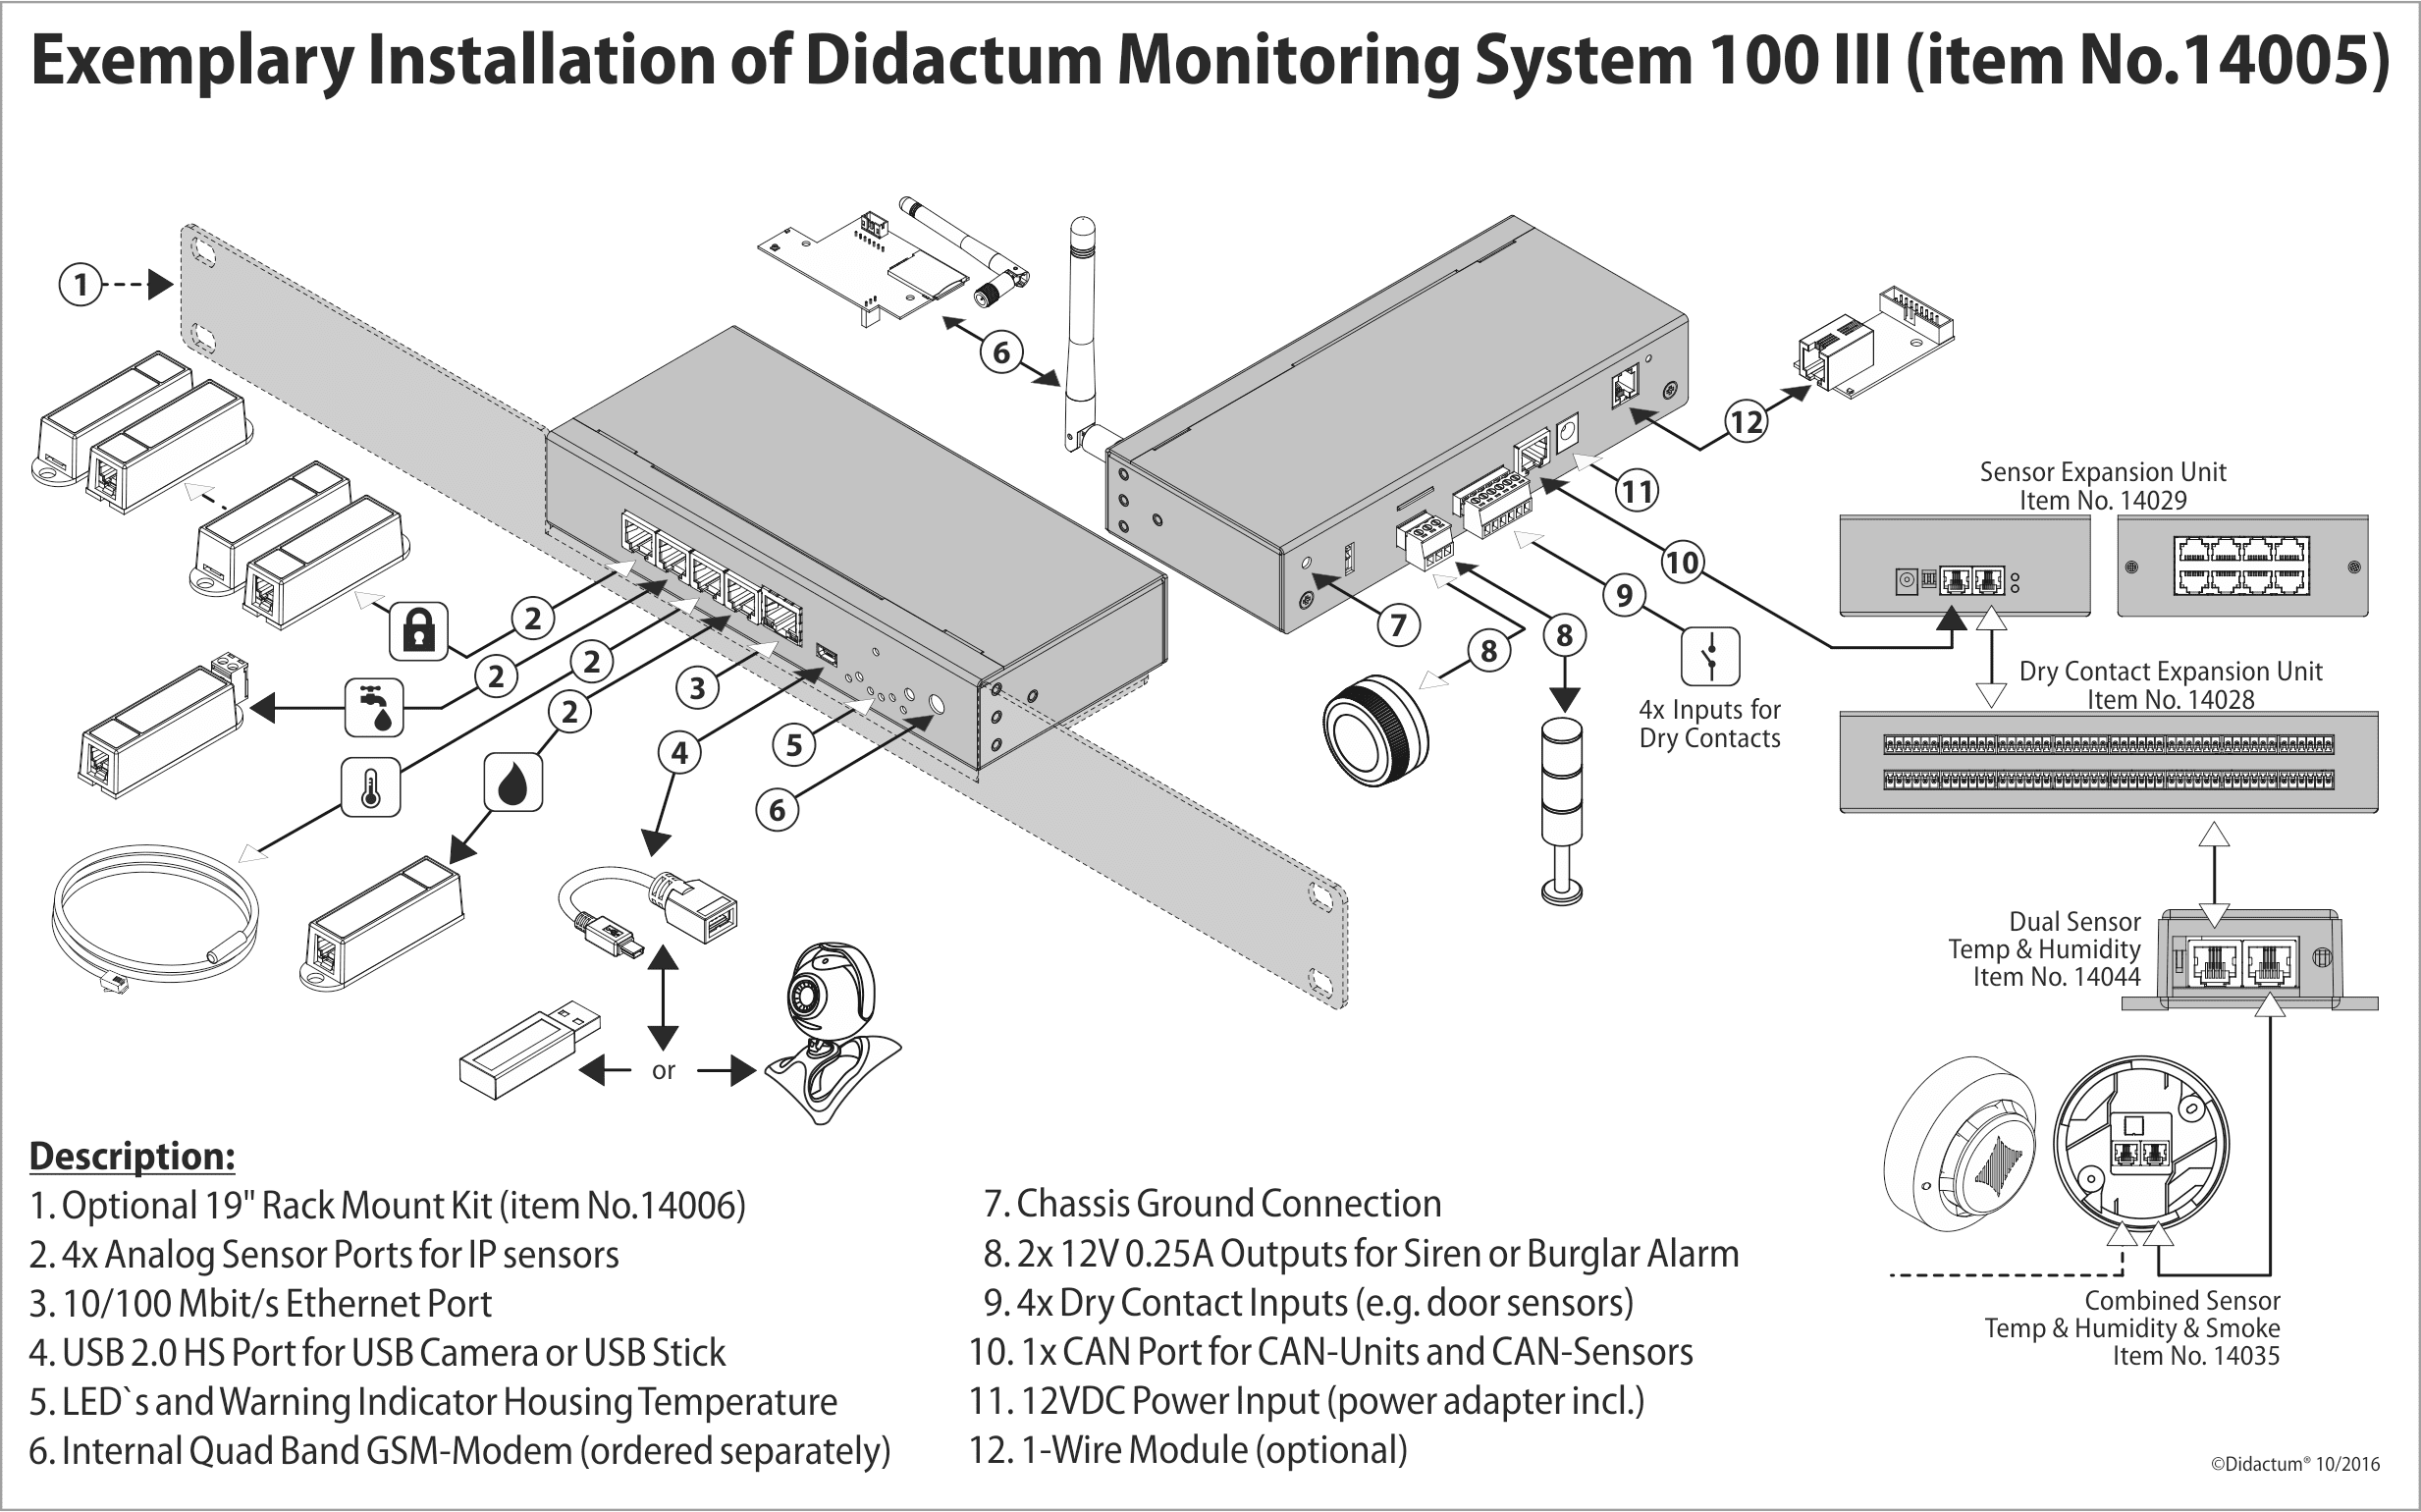 New Monitoring System 100 Iii Didactum Security Gmbh Temperature Circuit Preview Exemplary Installation 100iii5804a3fb09980